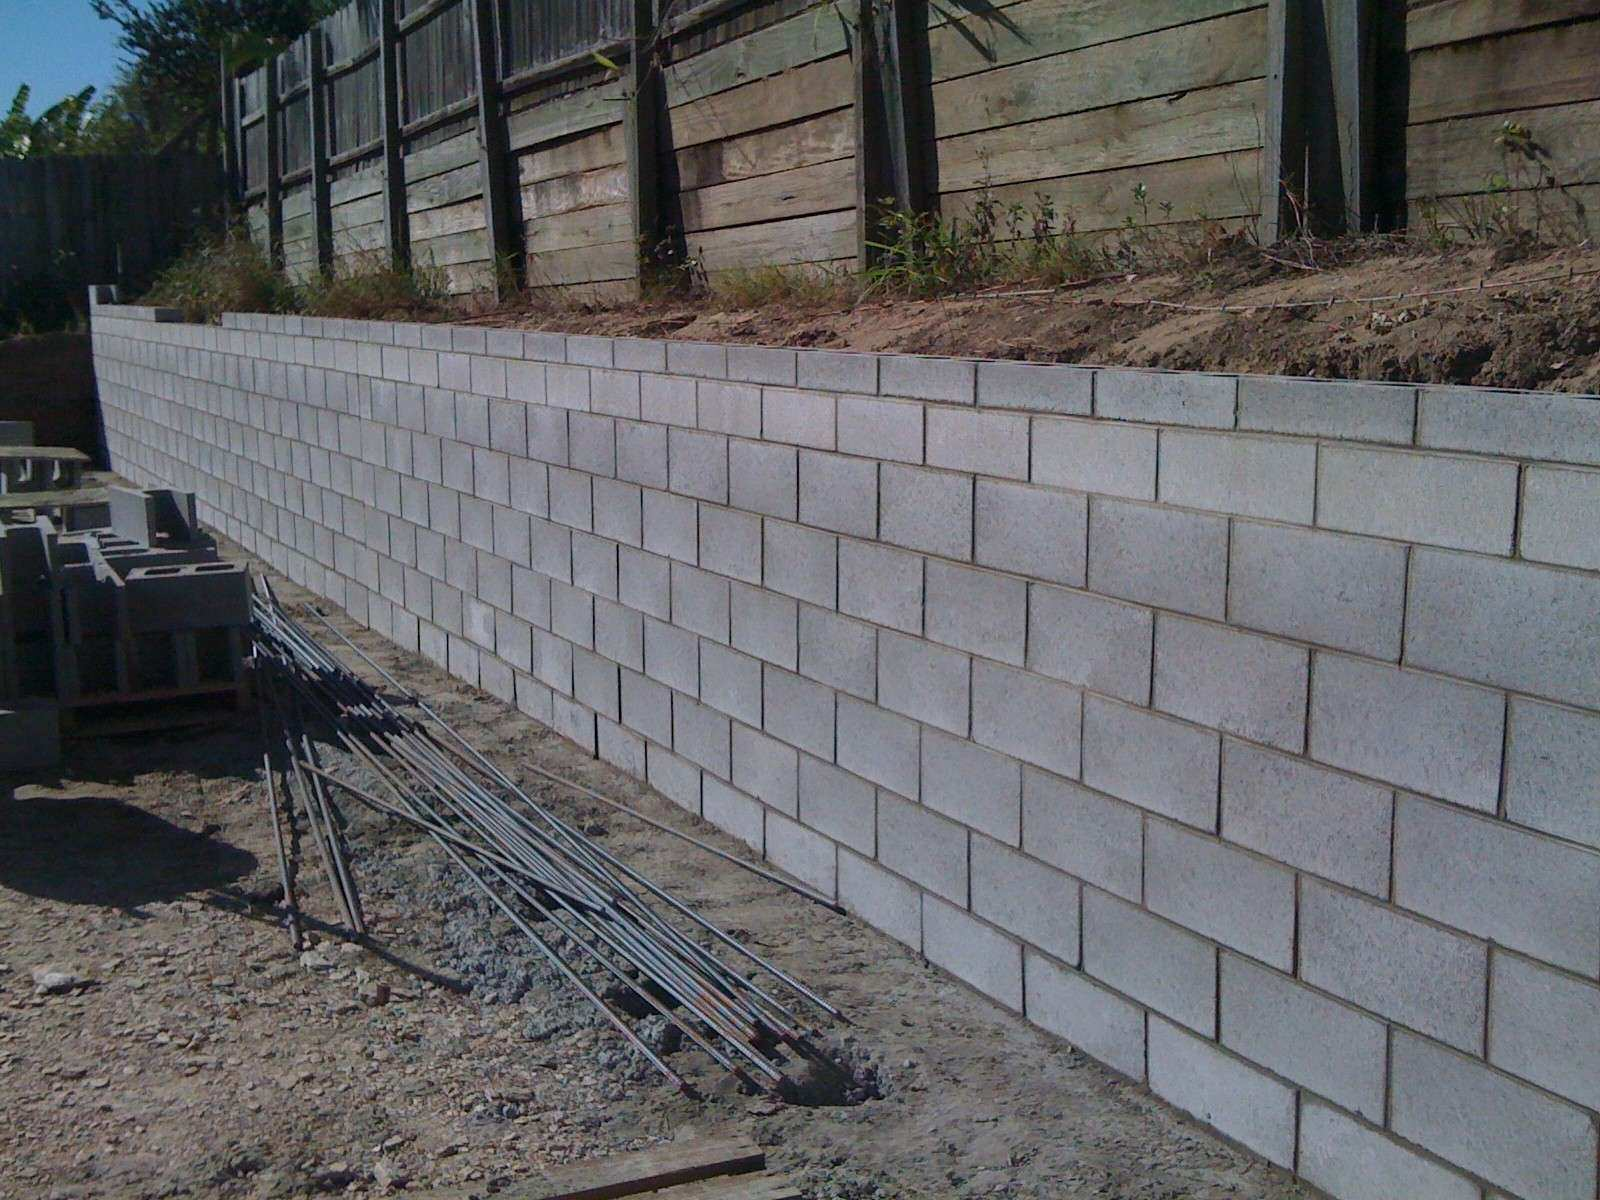 Retaining Wall Pictures Of Retaining Walls Ideas Best Of Shrewd Concrete Block Retaining Wall Decorative Walls Decor